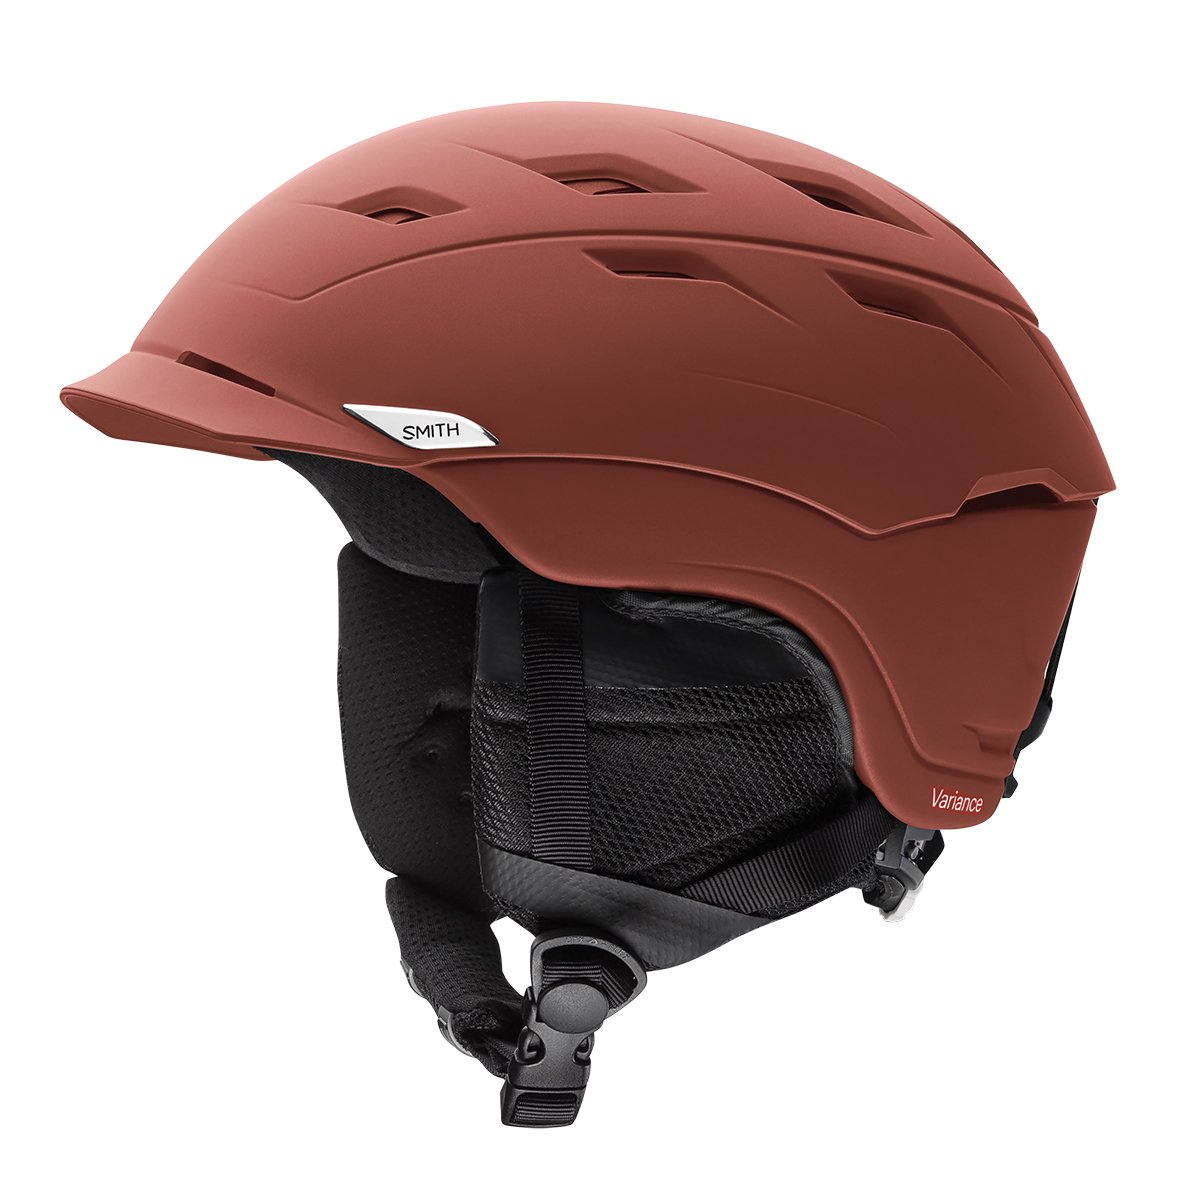 Smith Variance Snow Helmet - Matte Adobe (Large) by Smith Optics